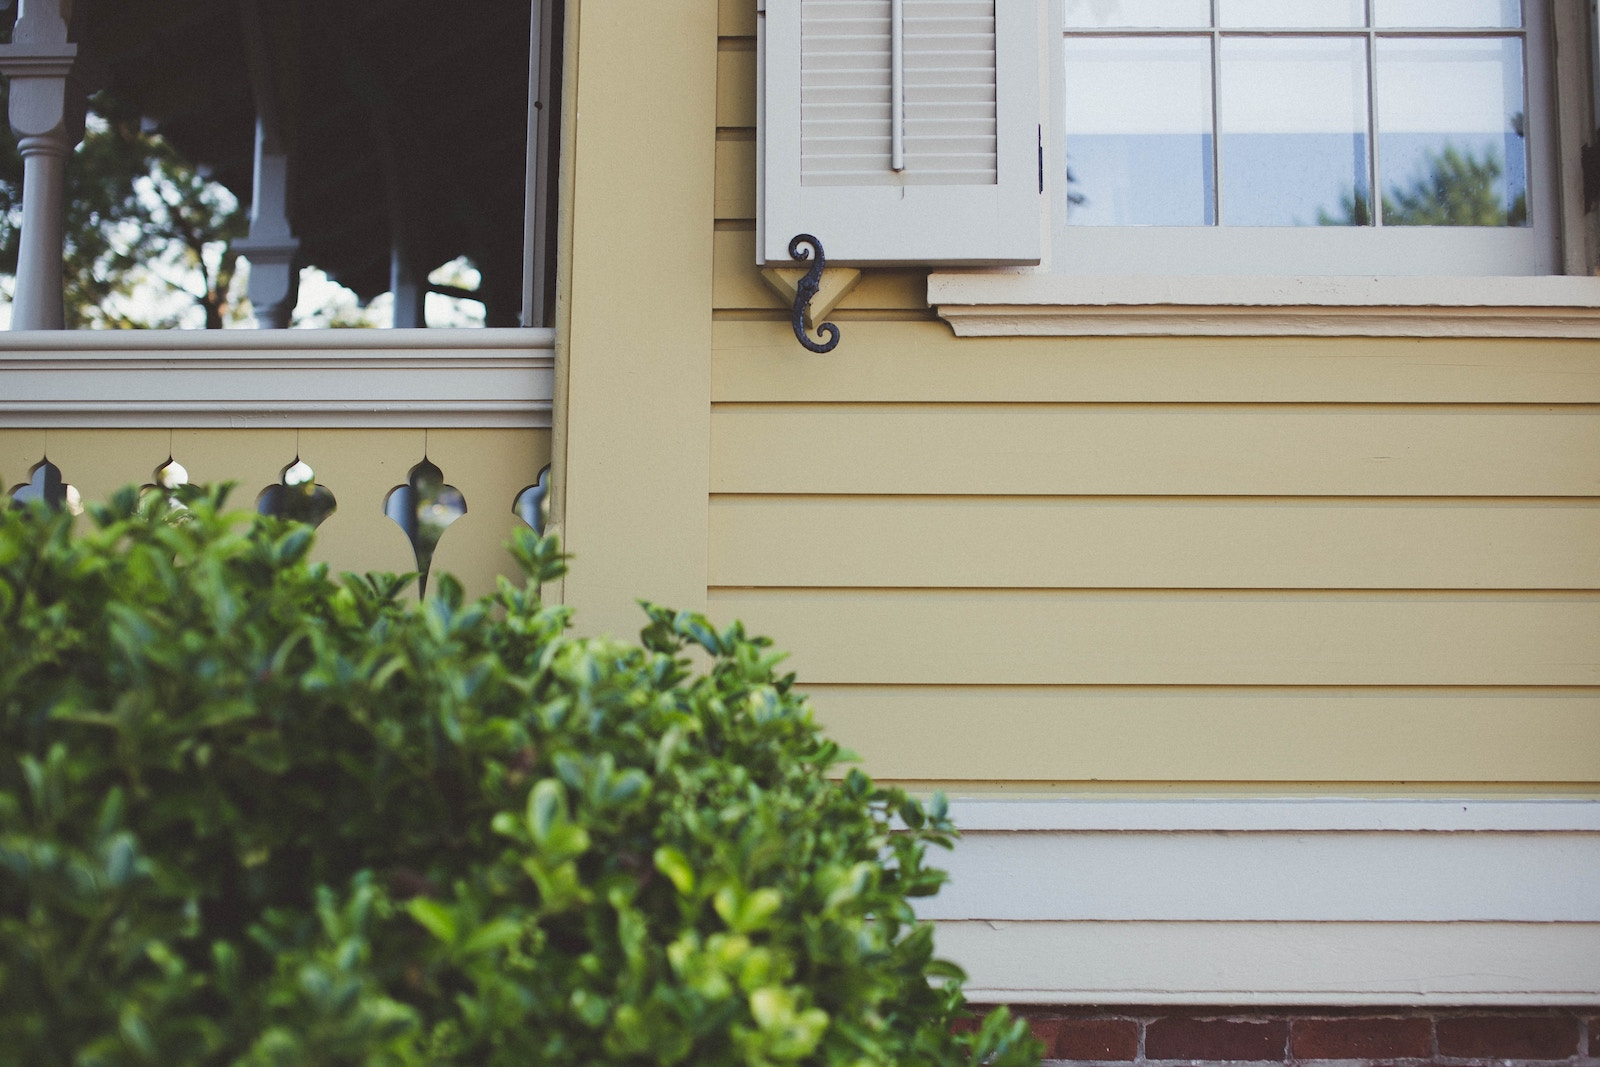 Top 5 Property Problems That May Leave Your Home Unsellable